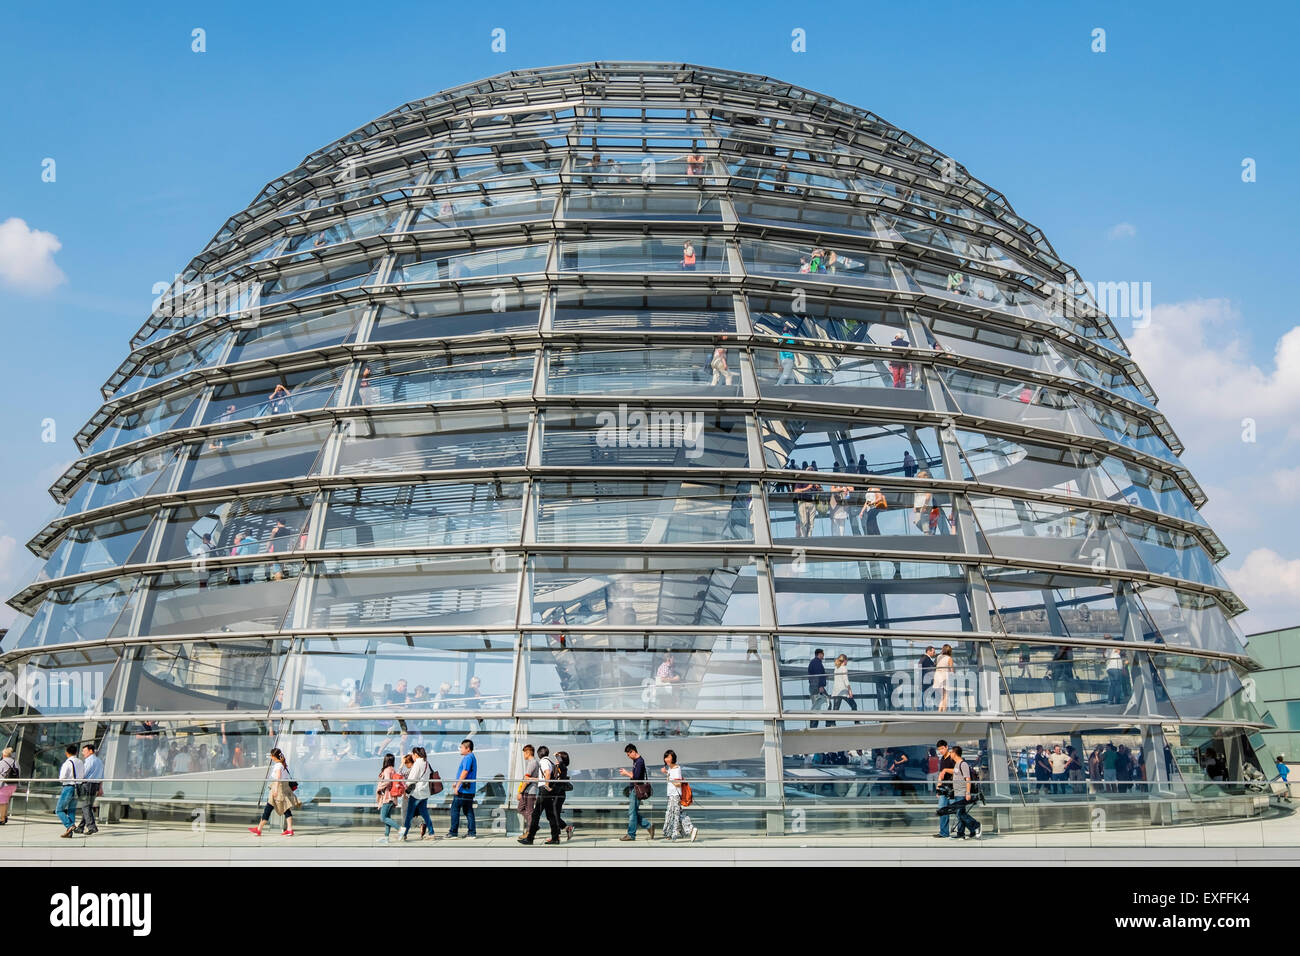 The glass dome above the Reichstag parliament building in Berlin Germany Stock Photo